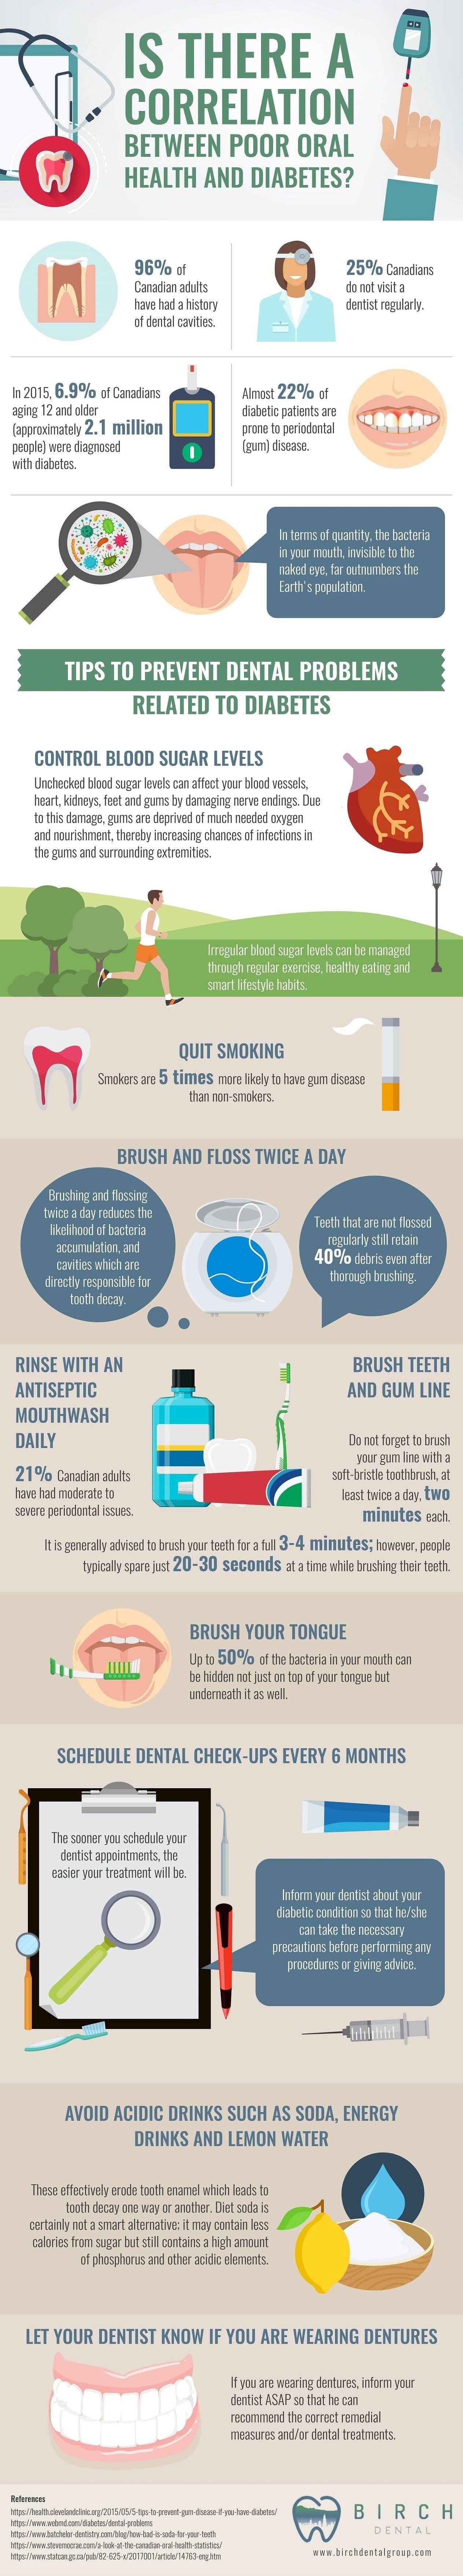 Is There A Correlation Between Poor Oral Health And Diabetes? #infographic